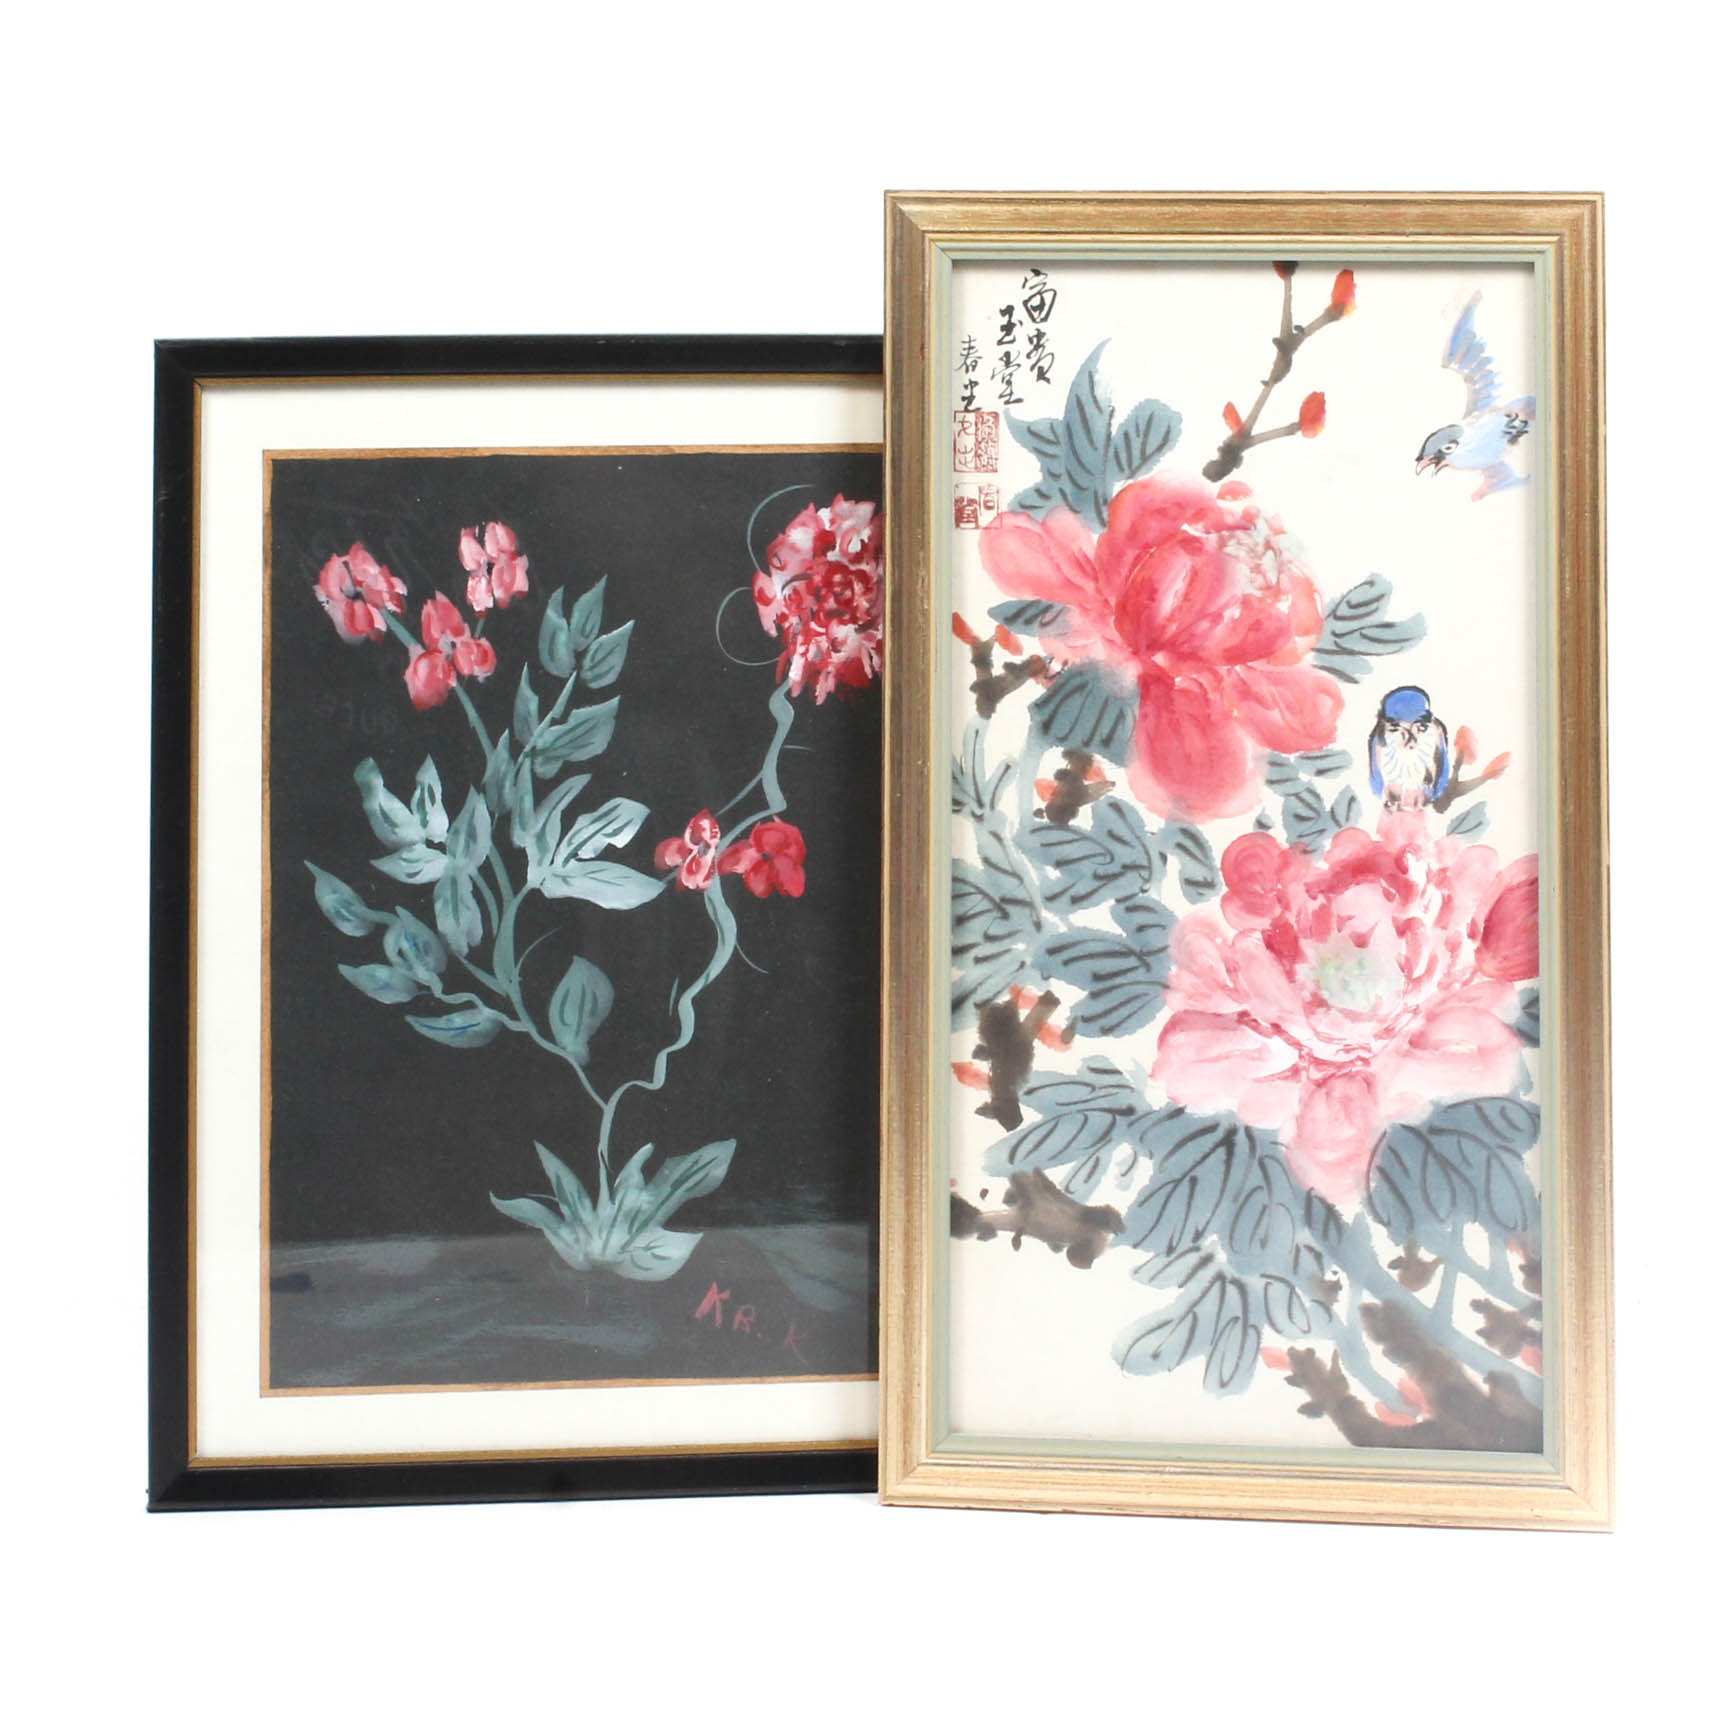 Original Hand-Painted Watercolor Florals